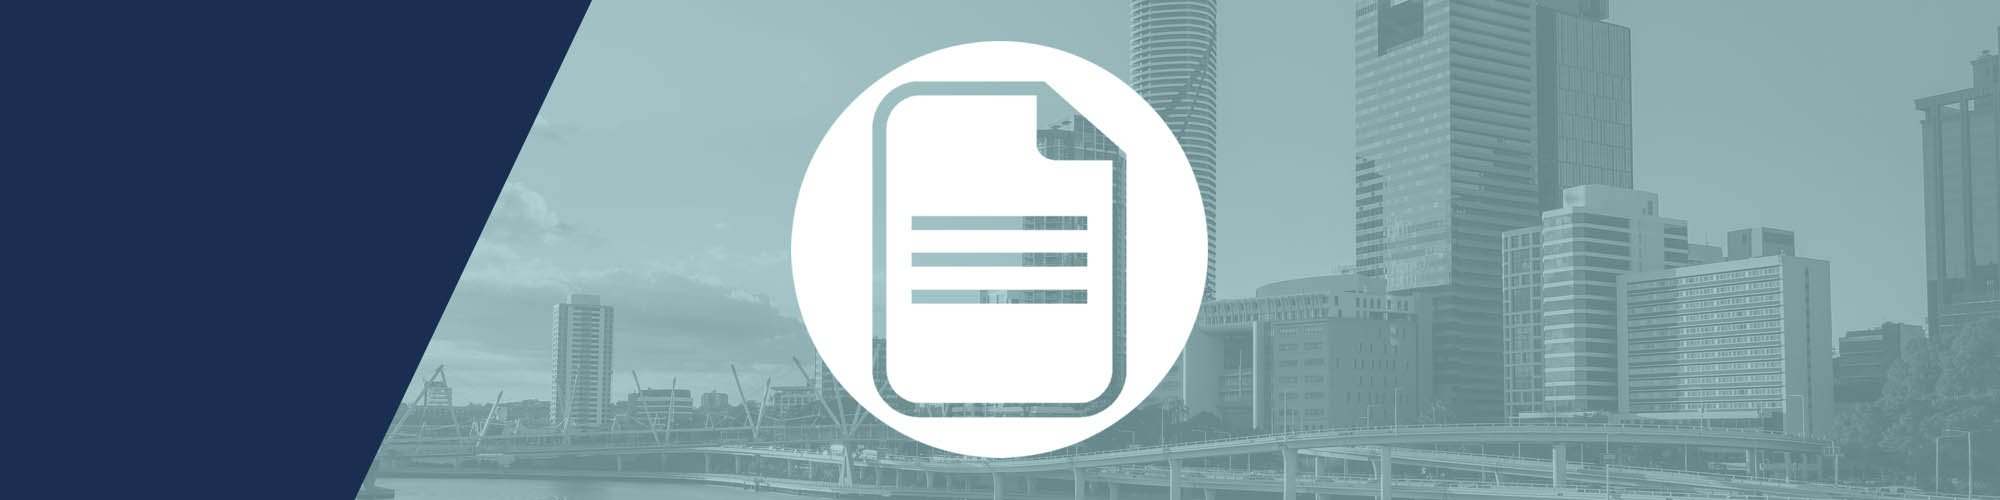 If you are a business owner on the Gold Coast, or in Brisbane, our commercial law lawyers can assist with franchise agreements, contract review and document drafting.